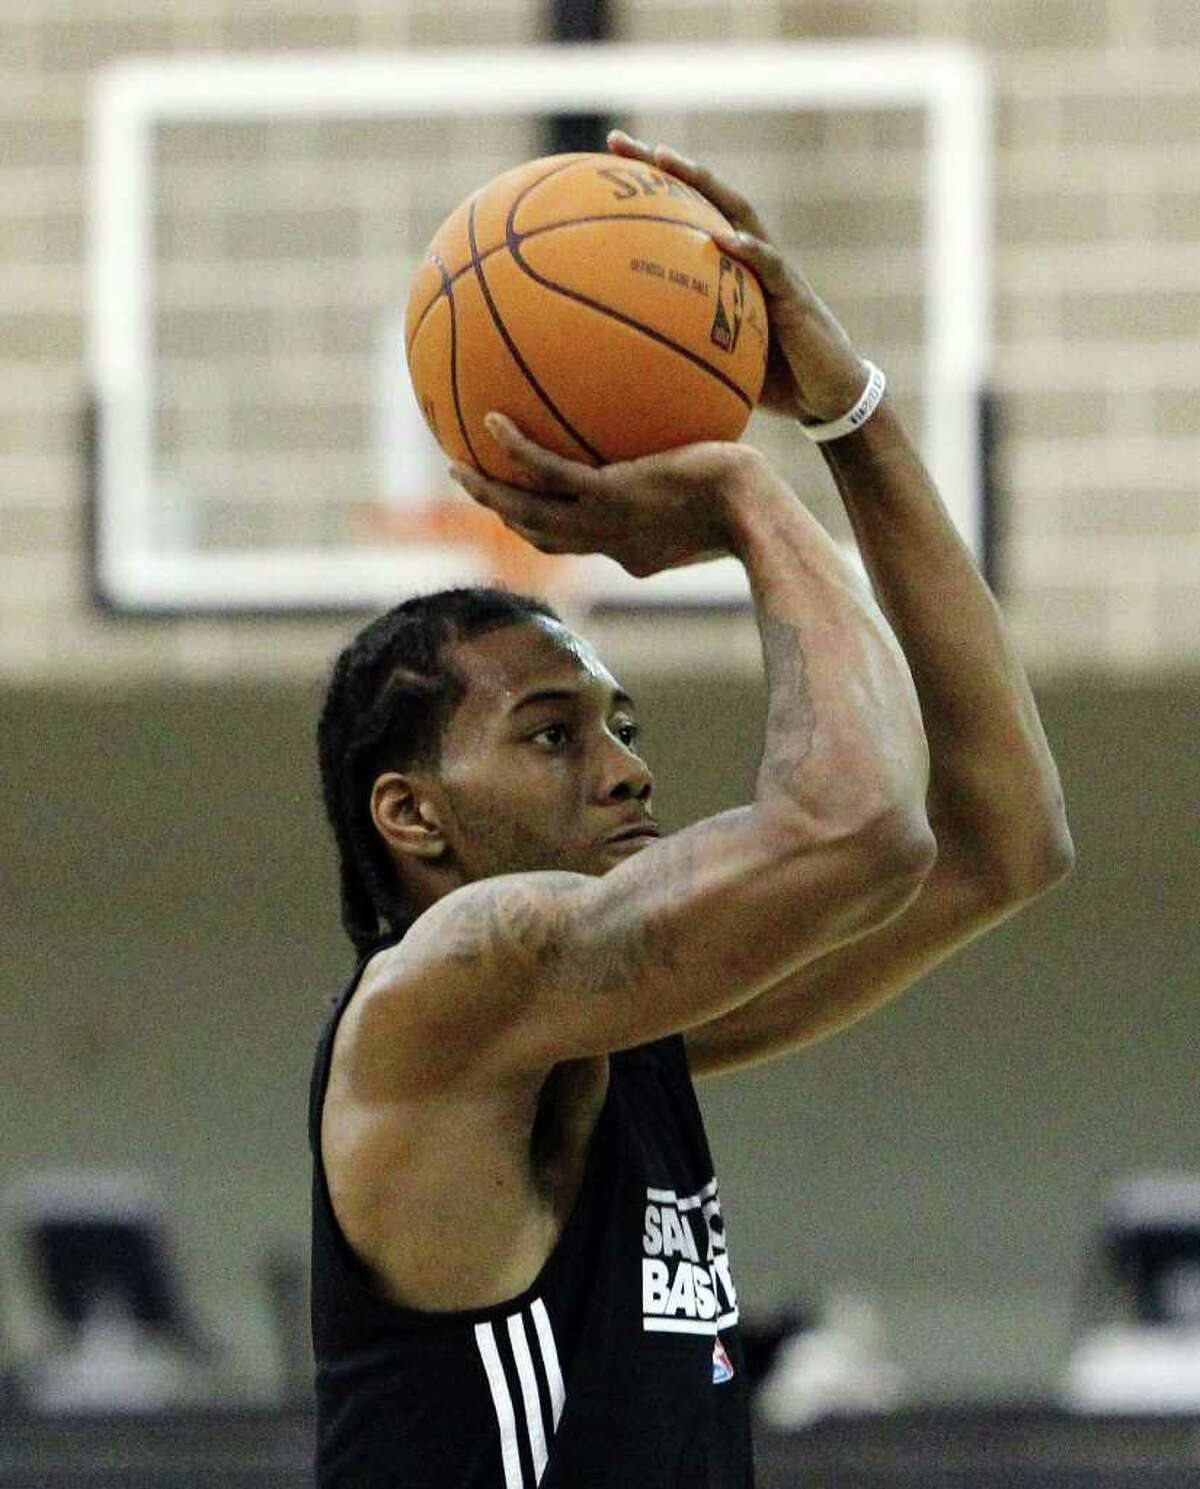 3. Leonard practices with the Spurs Photo: Spurs rookie Kawhi Leonard focuses on taking a shot as players for the San Antonio Spurs attend their first team practice on Friday, Dec. 9, 2011.